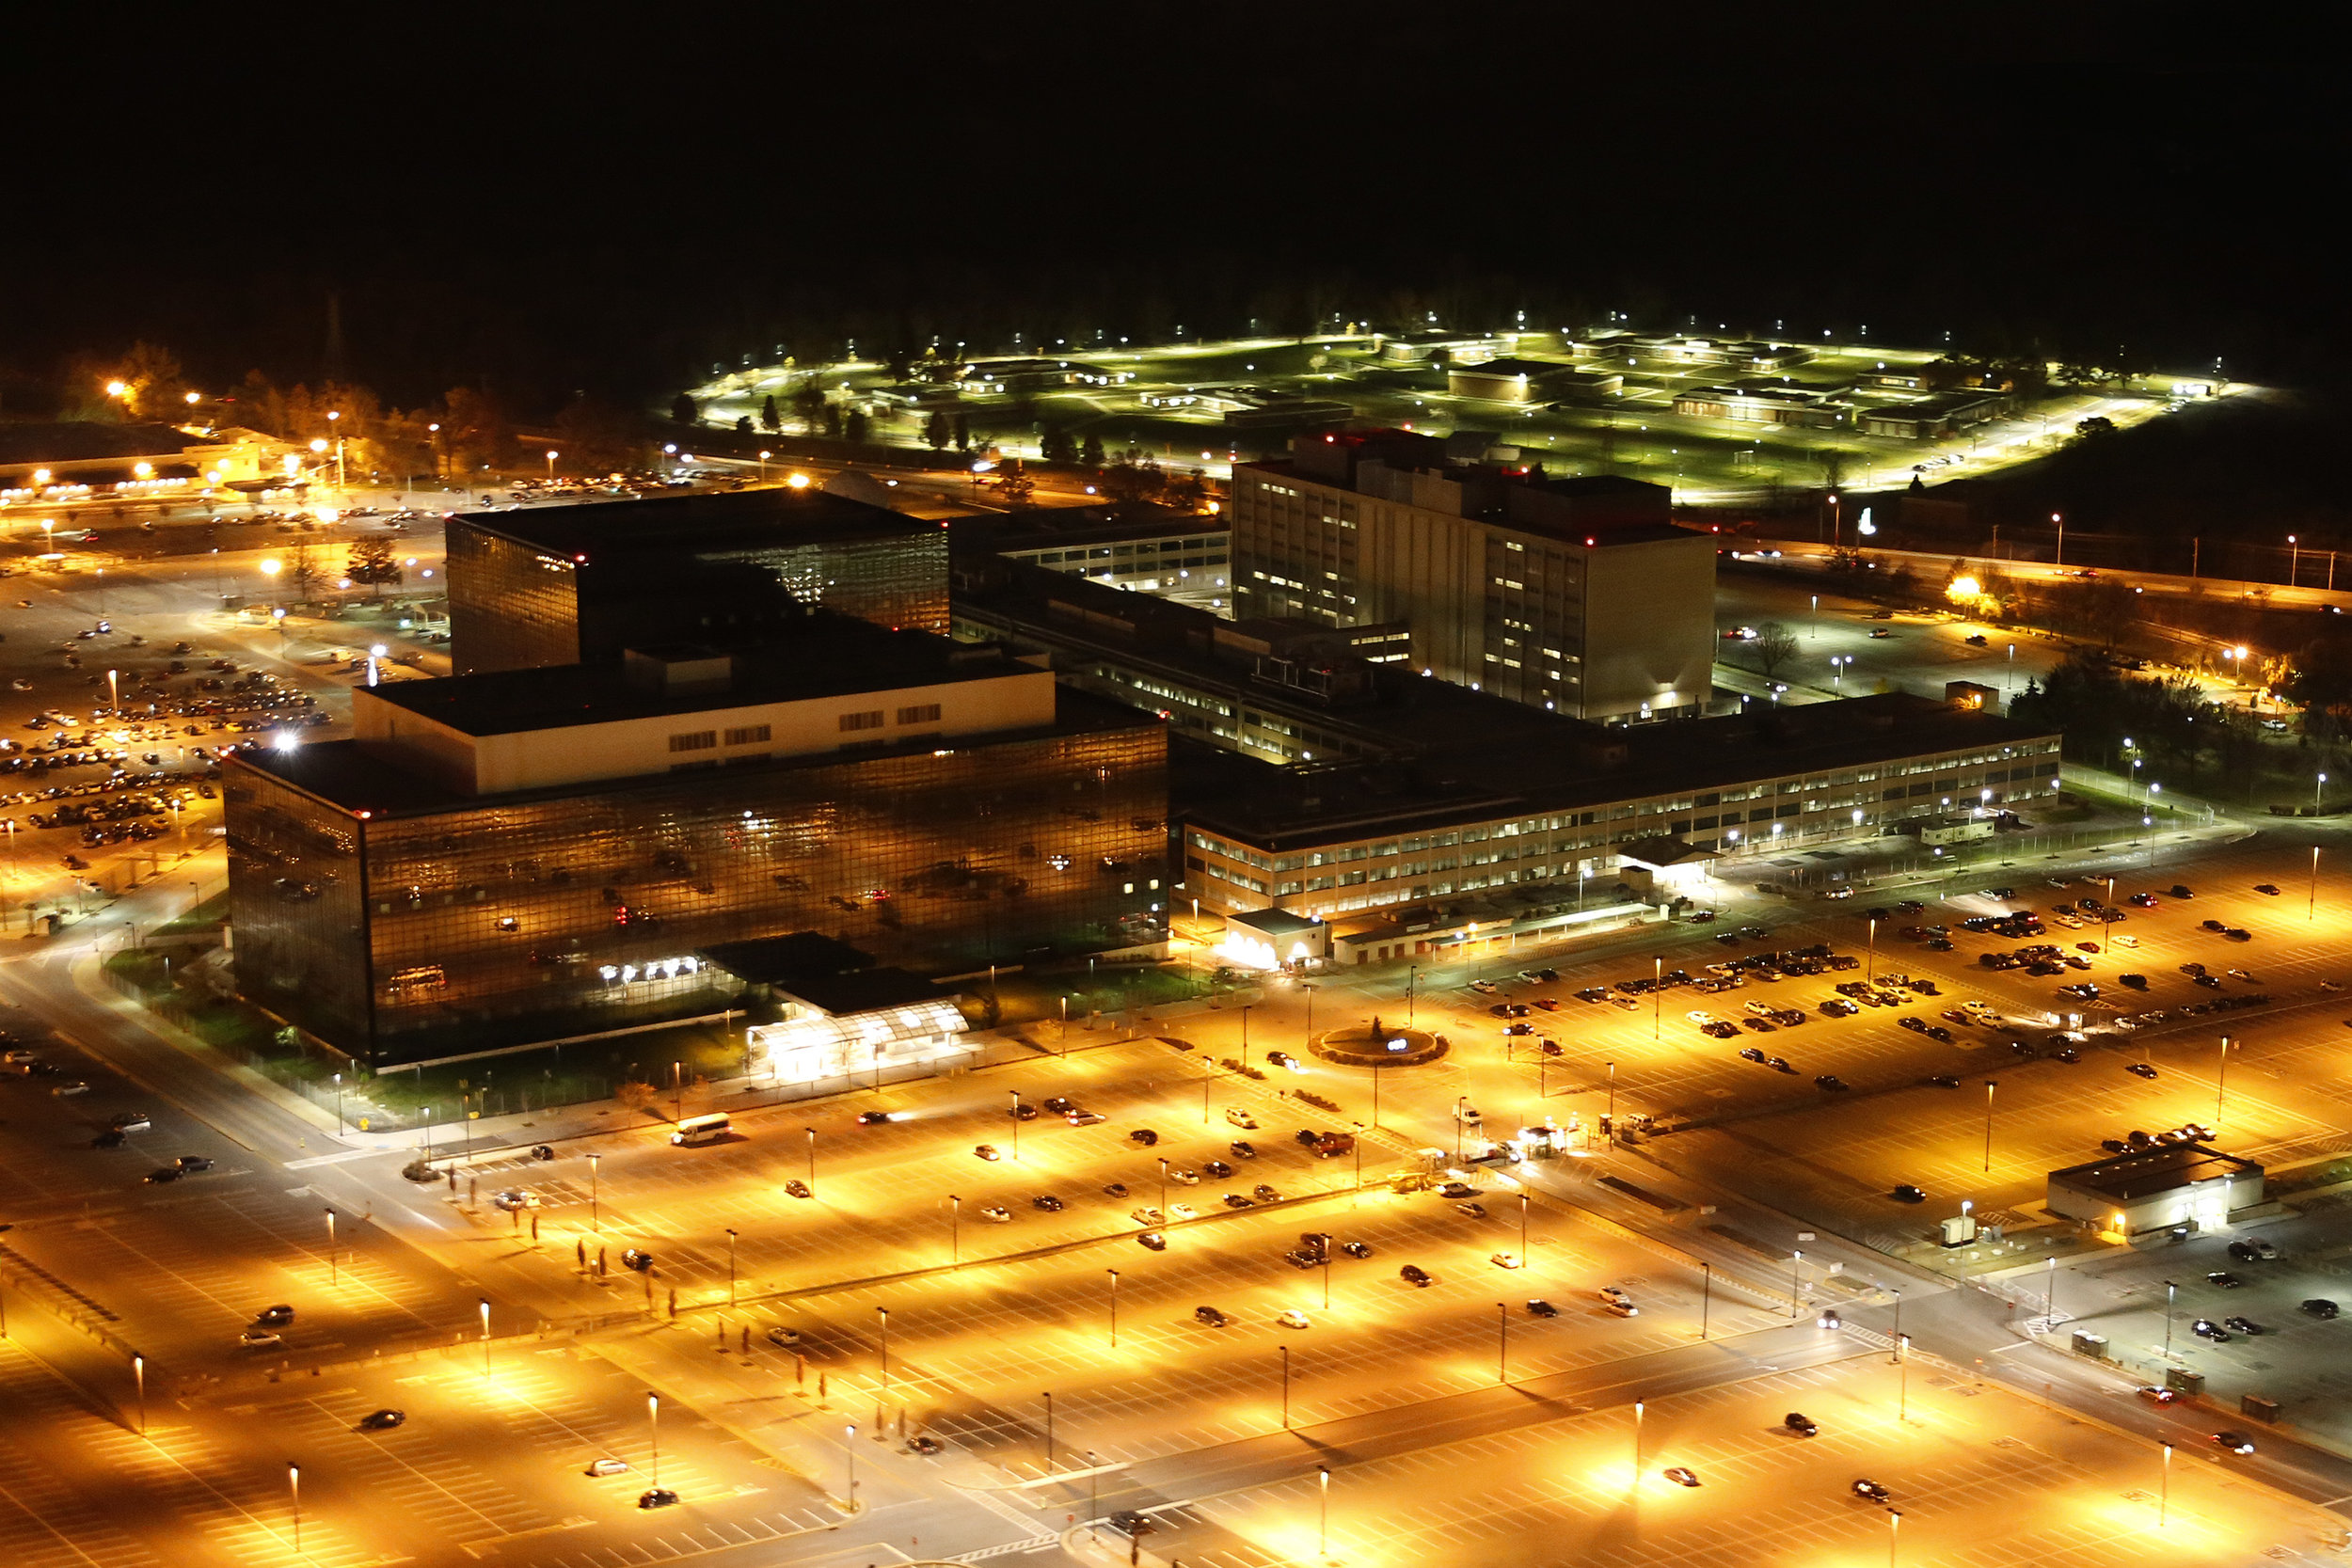 Trevor Paglen, aerial photo of National Security Agency, 2013. Digital photograph, from Wikimedia Commons.